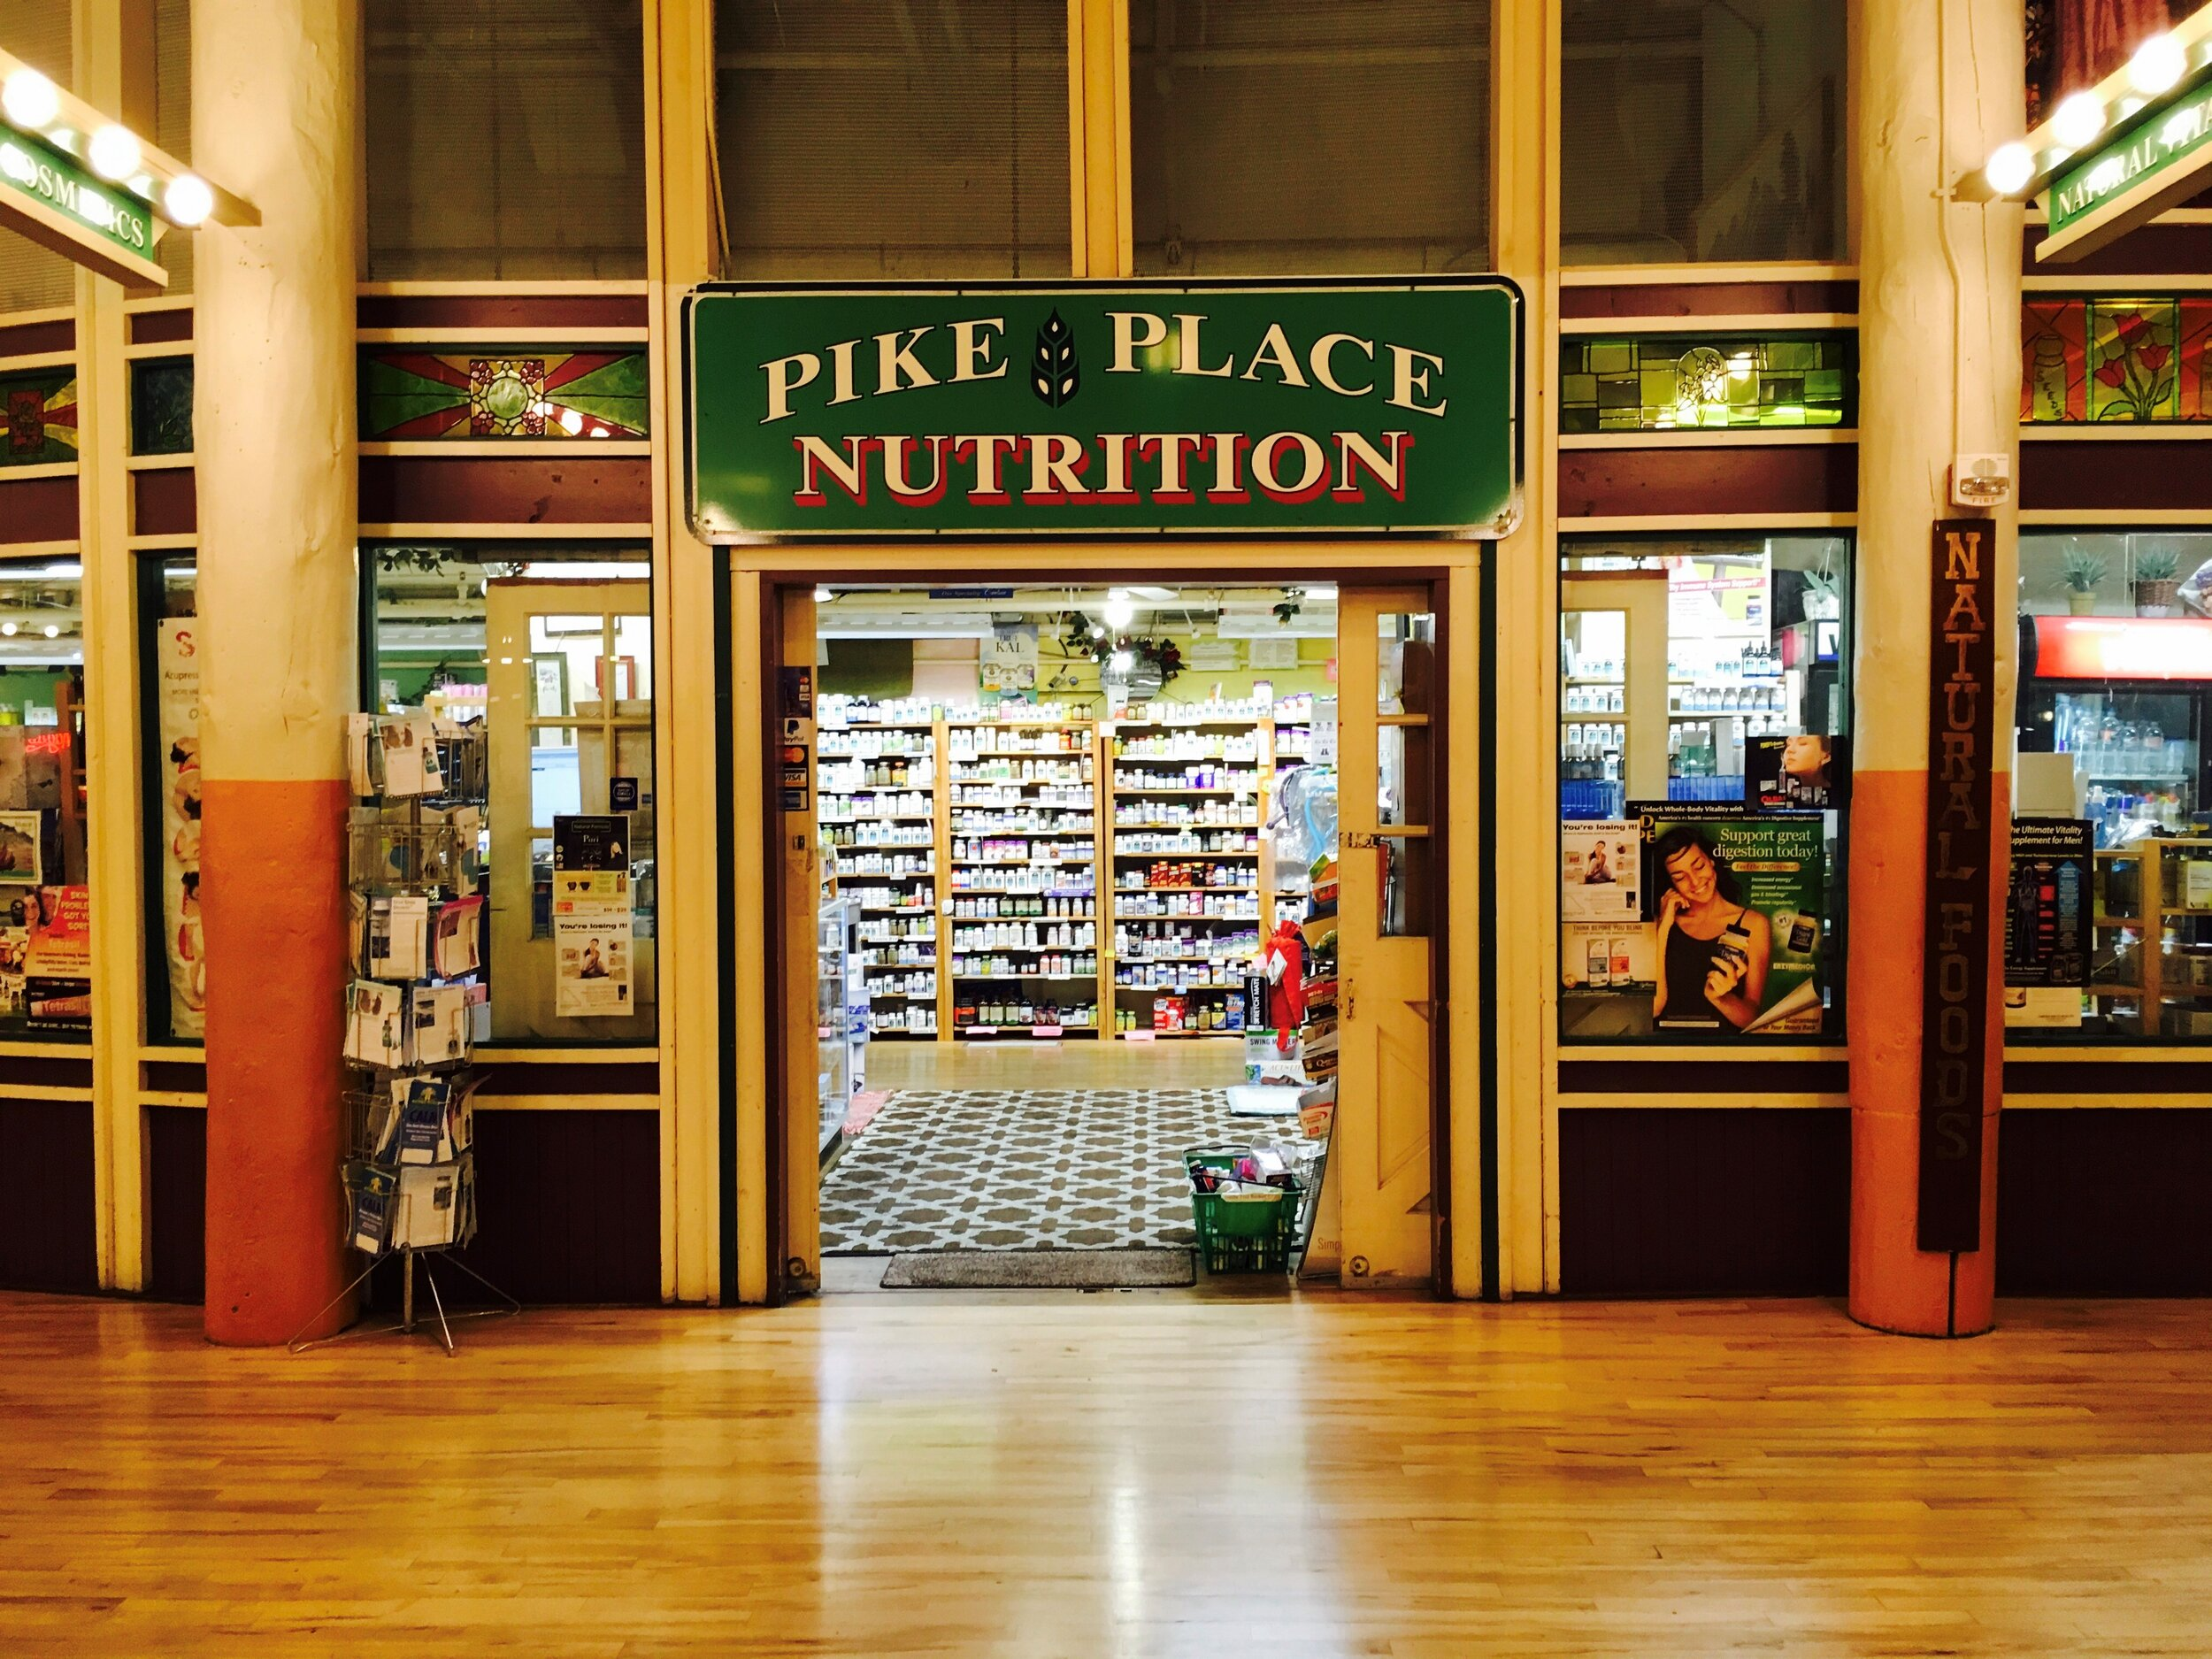 Pike Place Nutrition has been a Natural Supplement store since 1990.